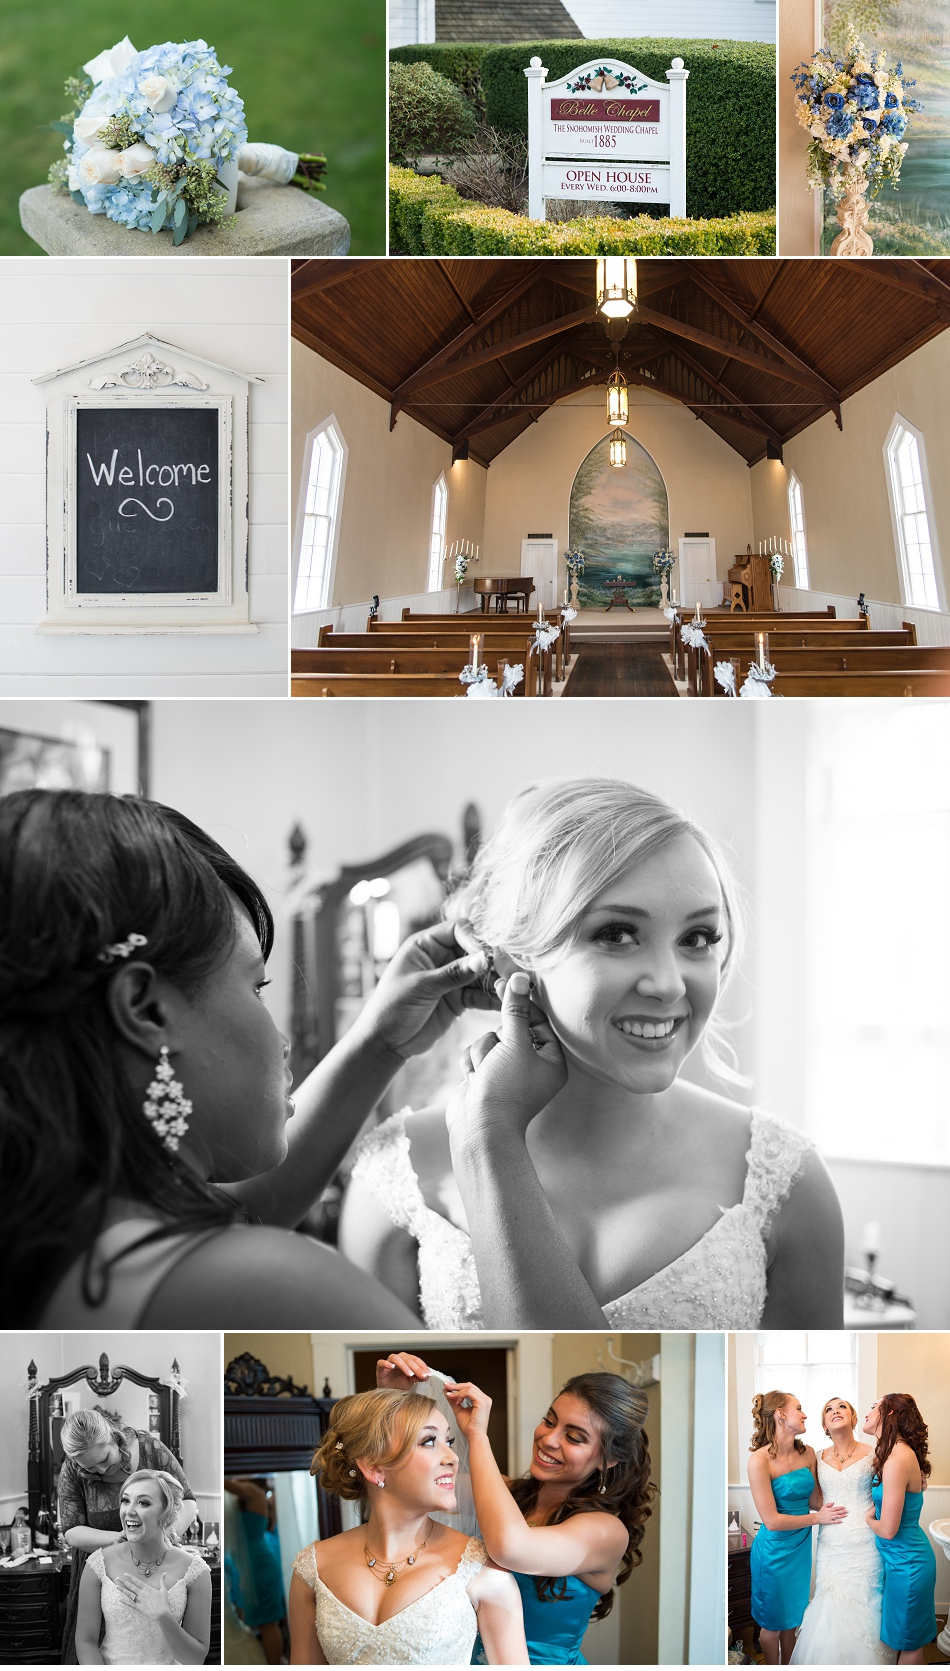 Belle Chapel Wedding Photographer, Snohomish, WA - Jared M. Burns (1)